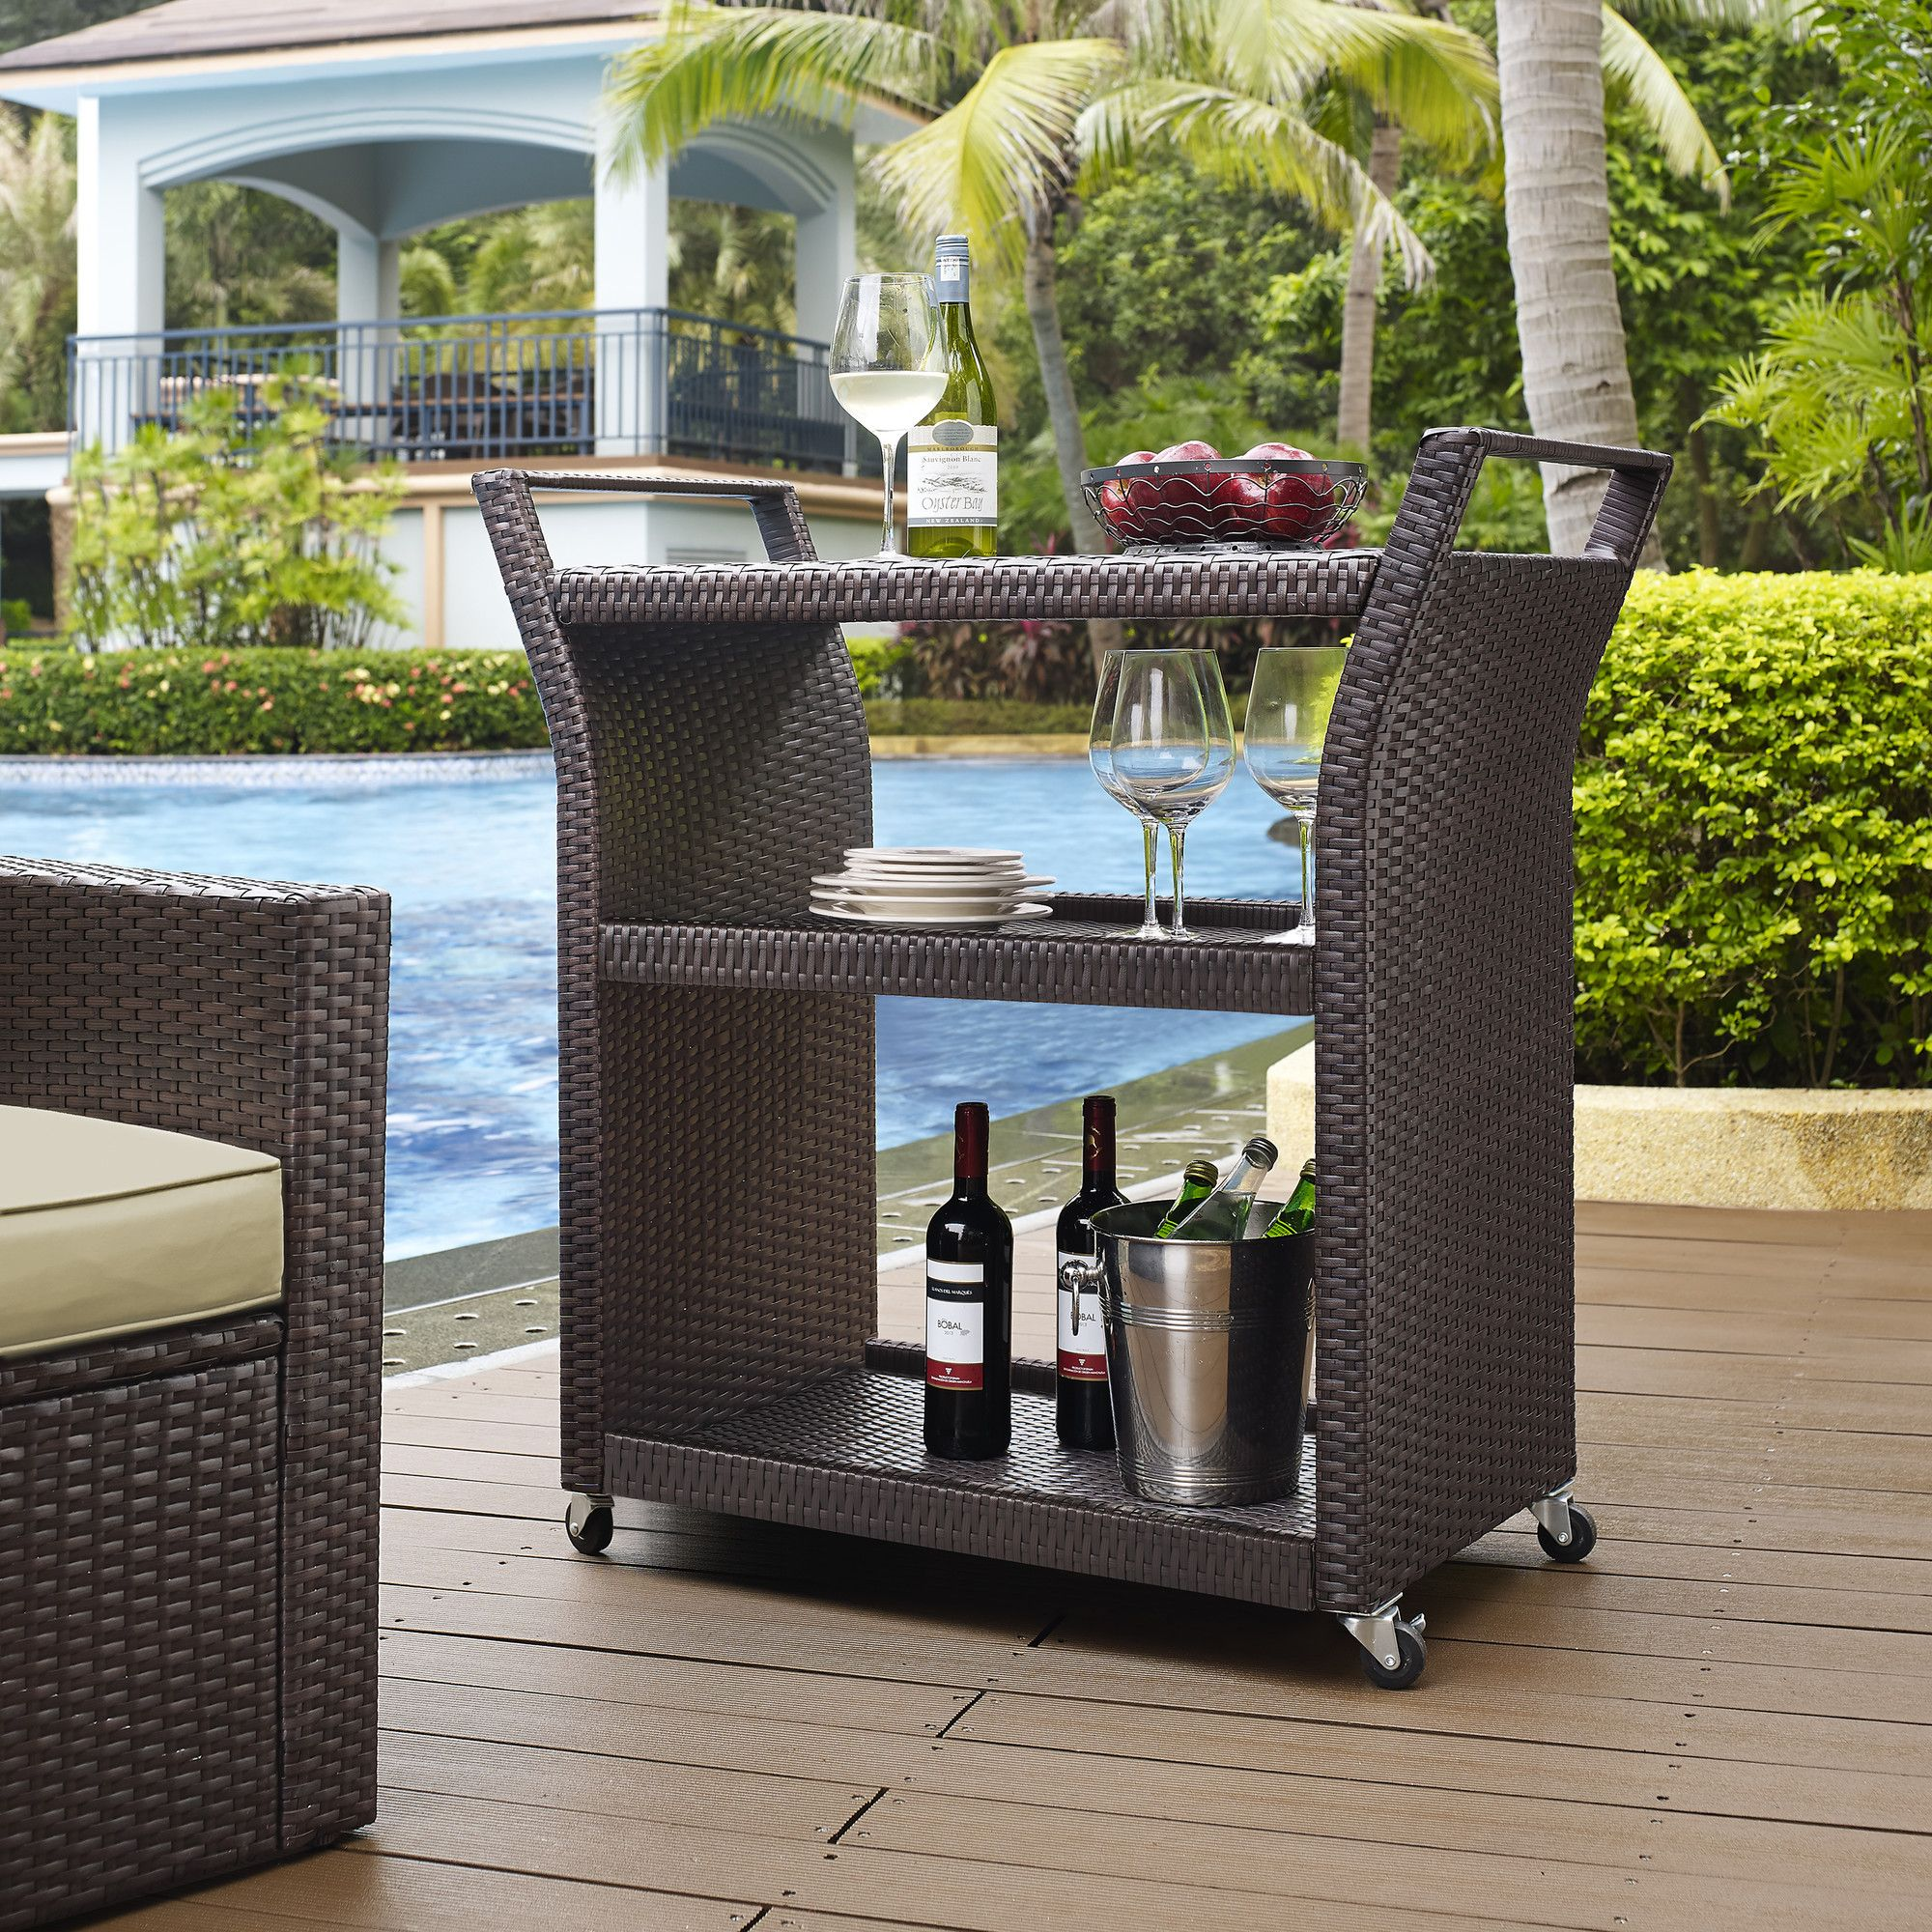 patio out stylish wooden g kitchens built galvalume of outdoor bars fall and